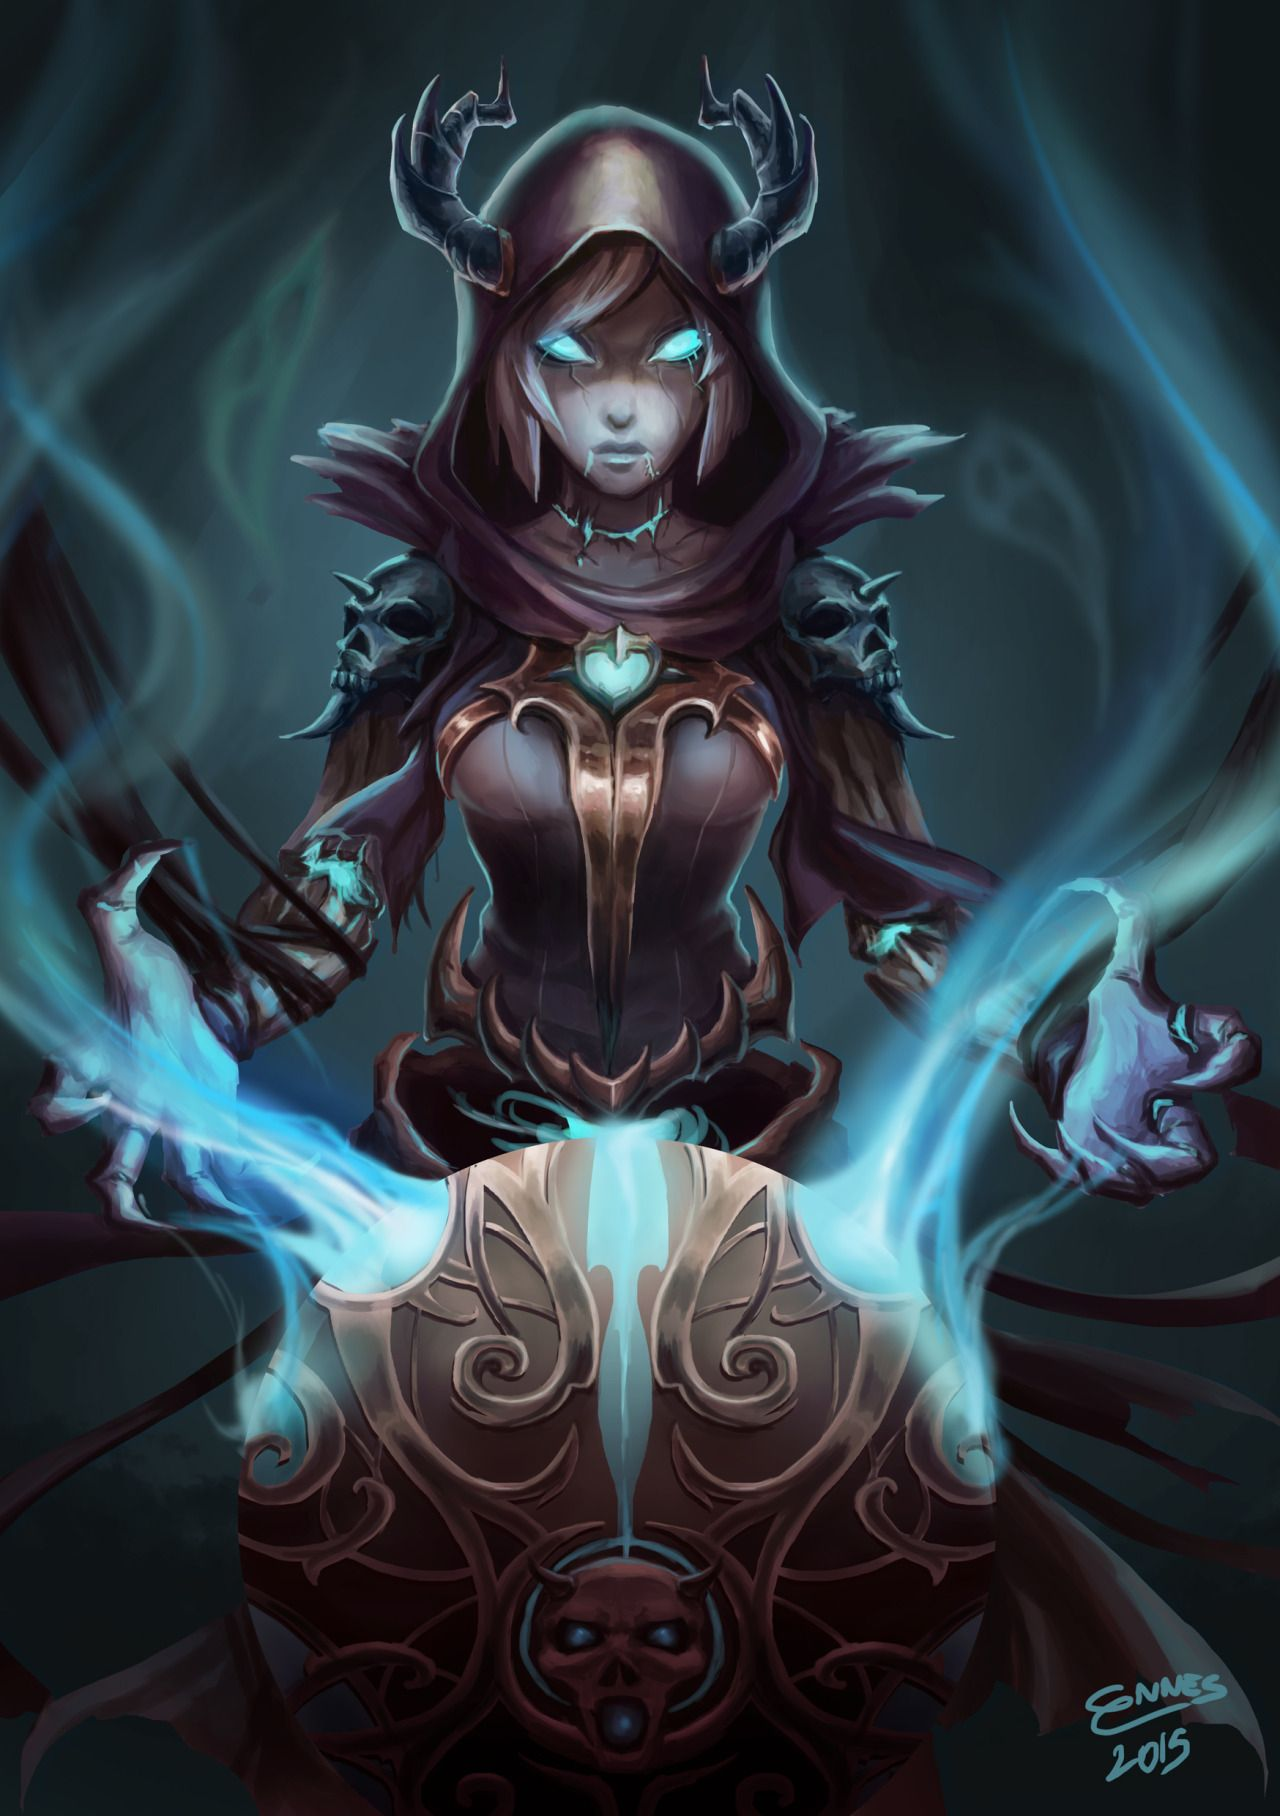 Pin by Christian on Games League of Legends | Zeichnen ...